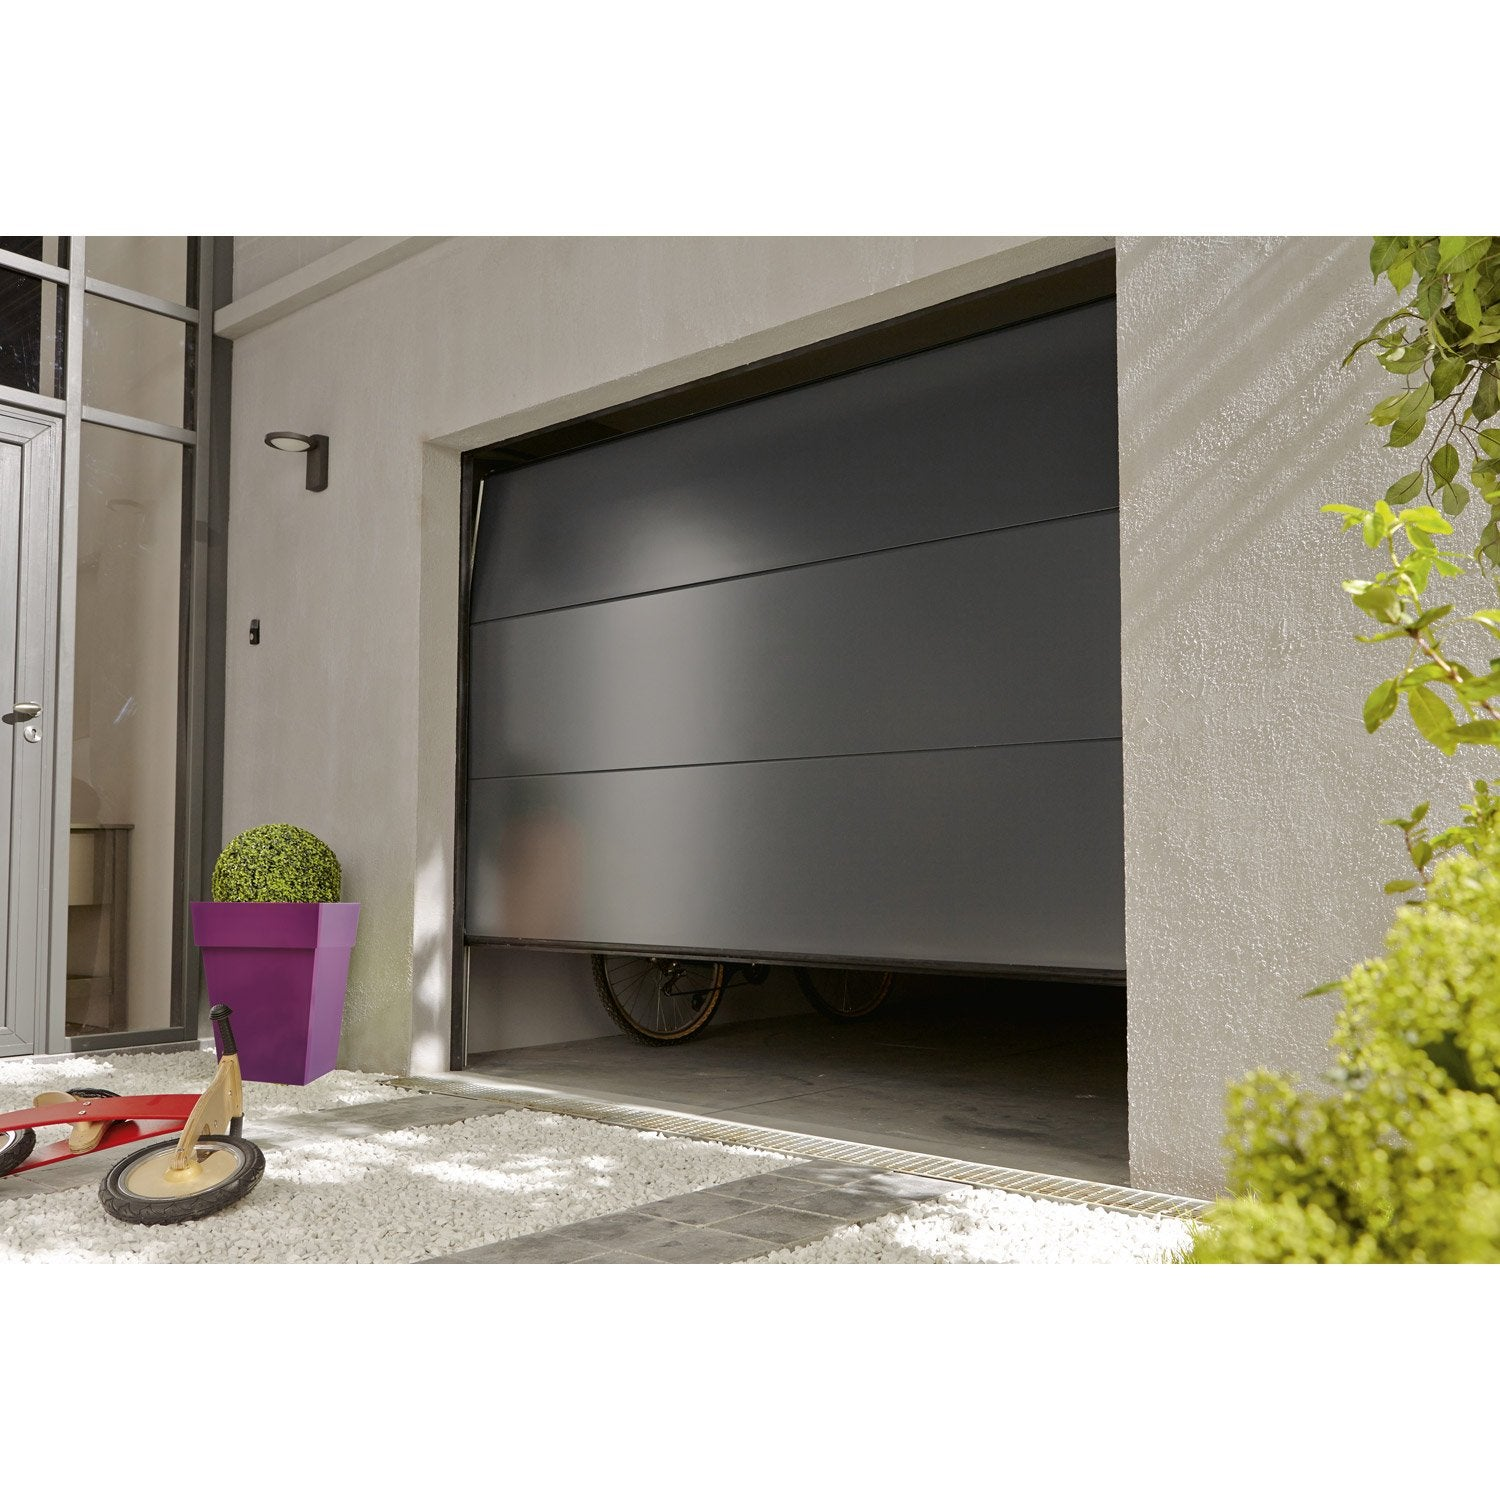 Porte de garage sectionelle palma acier gris anthracite for Double porte de garage